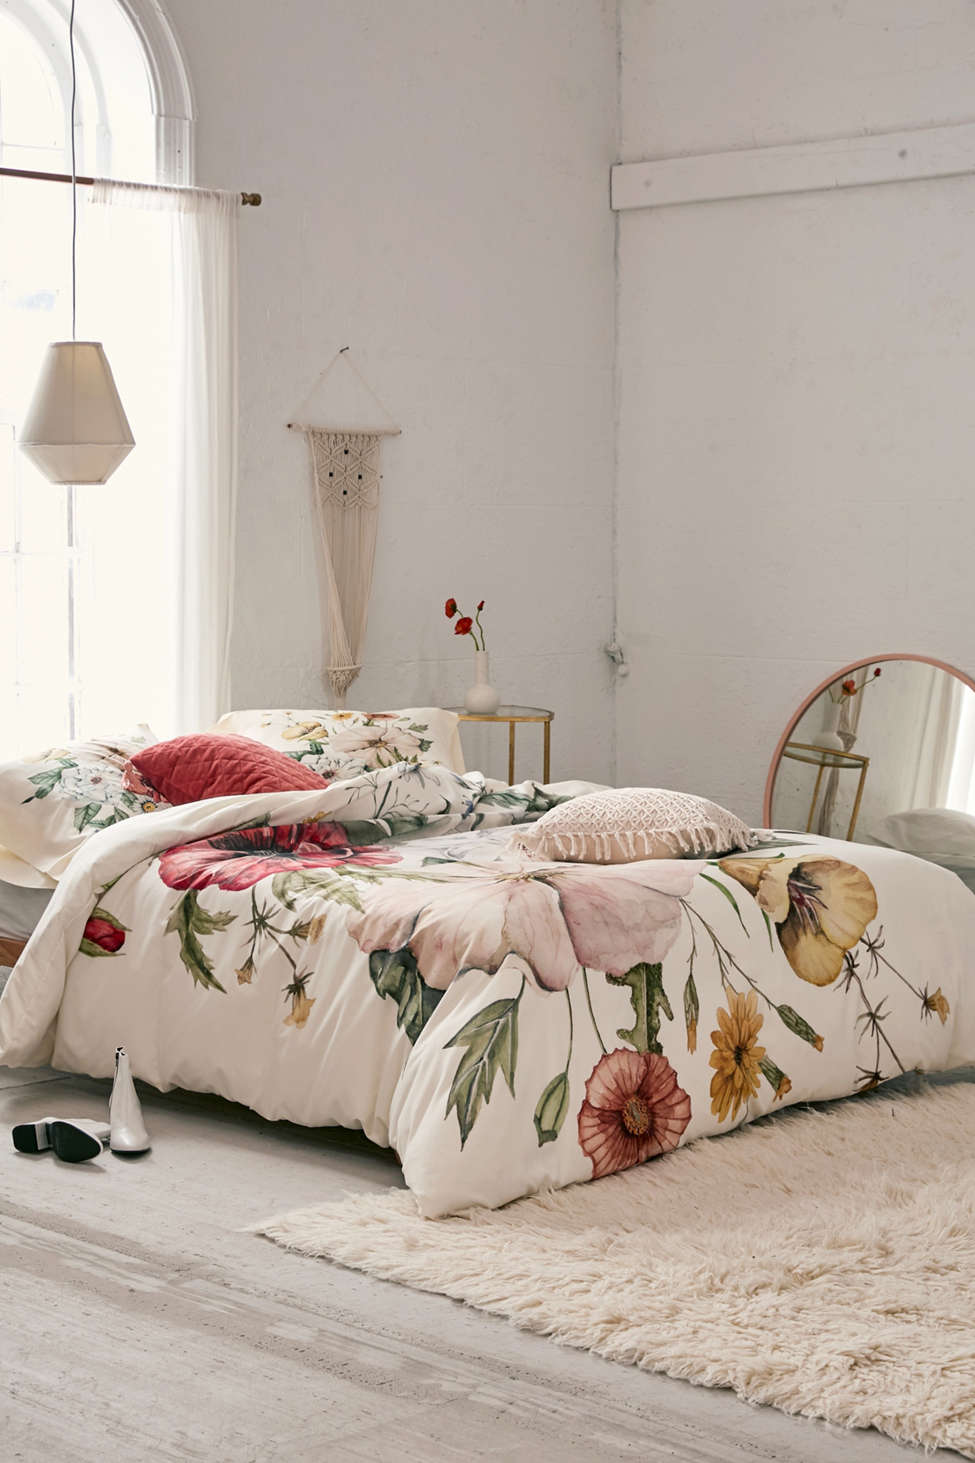 Slide View: 1: Shealeen Louise For Deny Wildflower Bouquet Duvet Cover